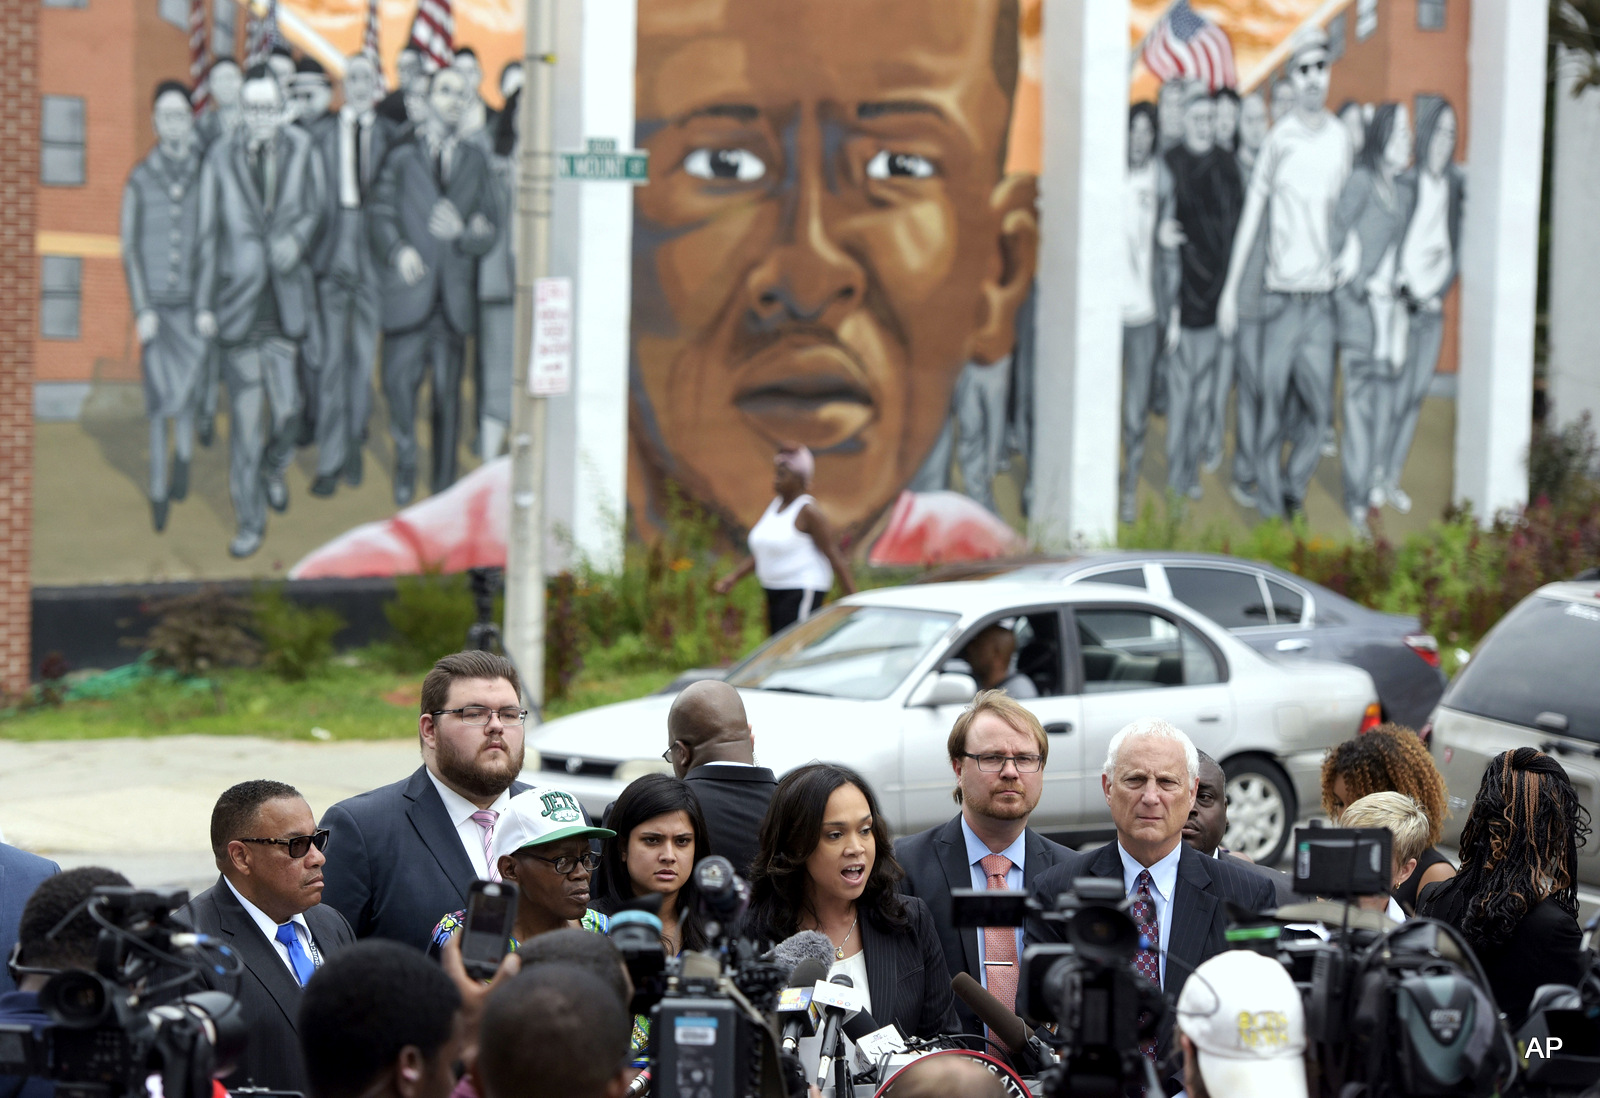 A mural depicting Freddie Gray in the background, Baltimore State's Attorney Marilyn Mosby, center, speaks during a news conference after her office dropped remaining charges against the three Baltimore police officers who were still awaiting trial in Freddie Gray' death in Baltimore.